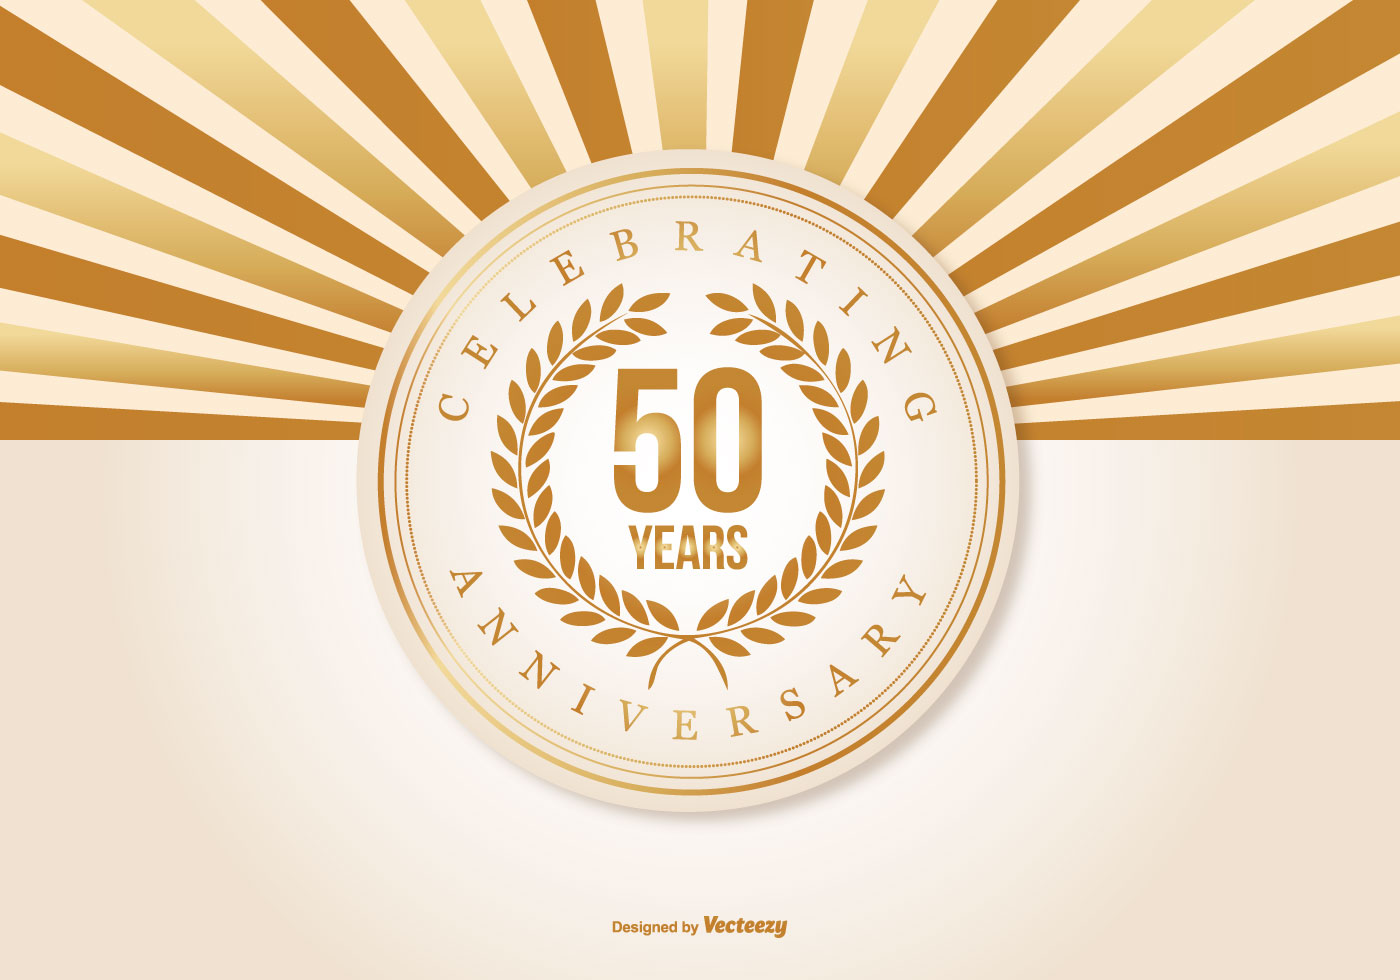 50th Wedding Anniversary Free Vector Art.